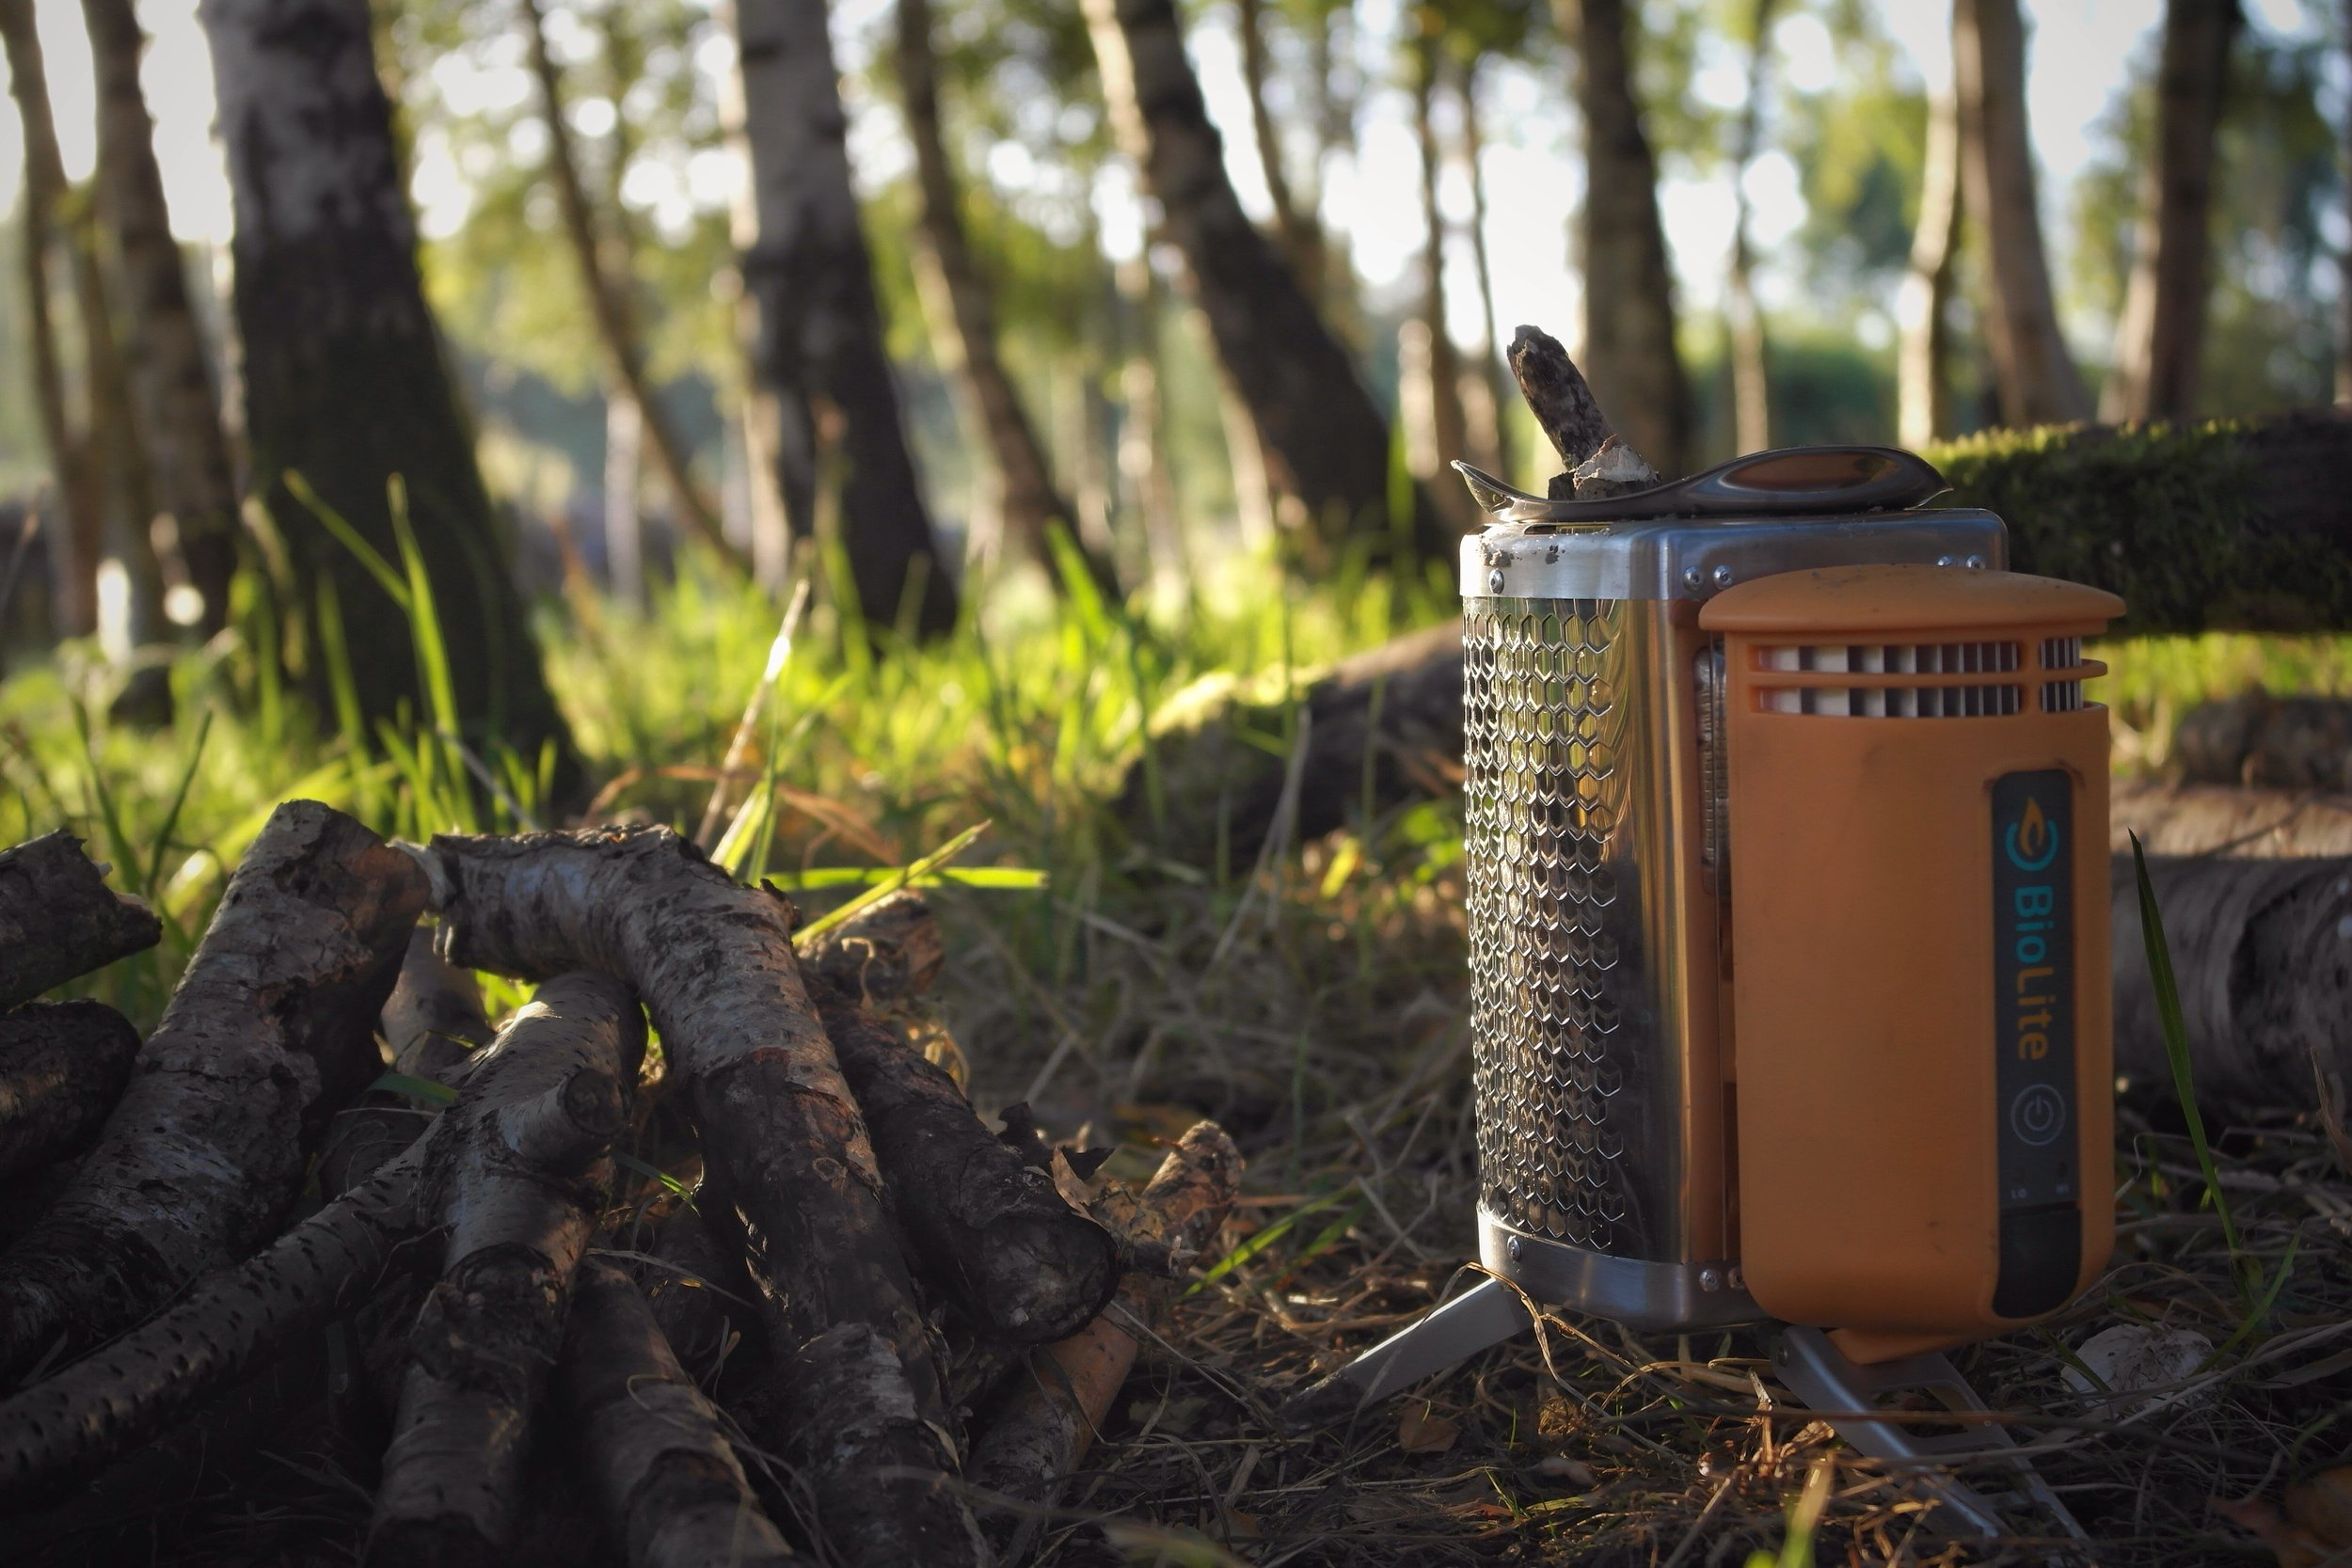 The Biolite Camping Stove. Unedited.